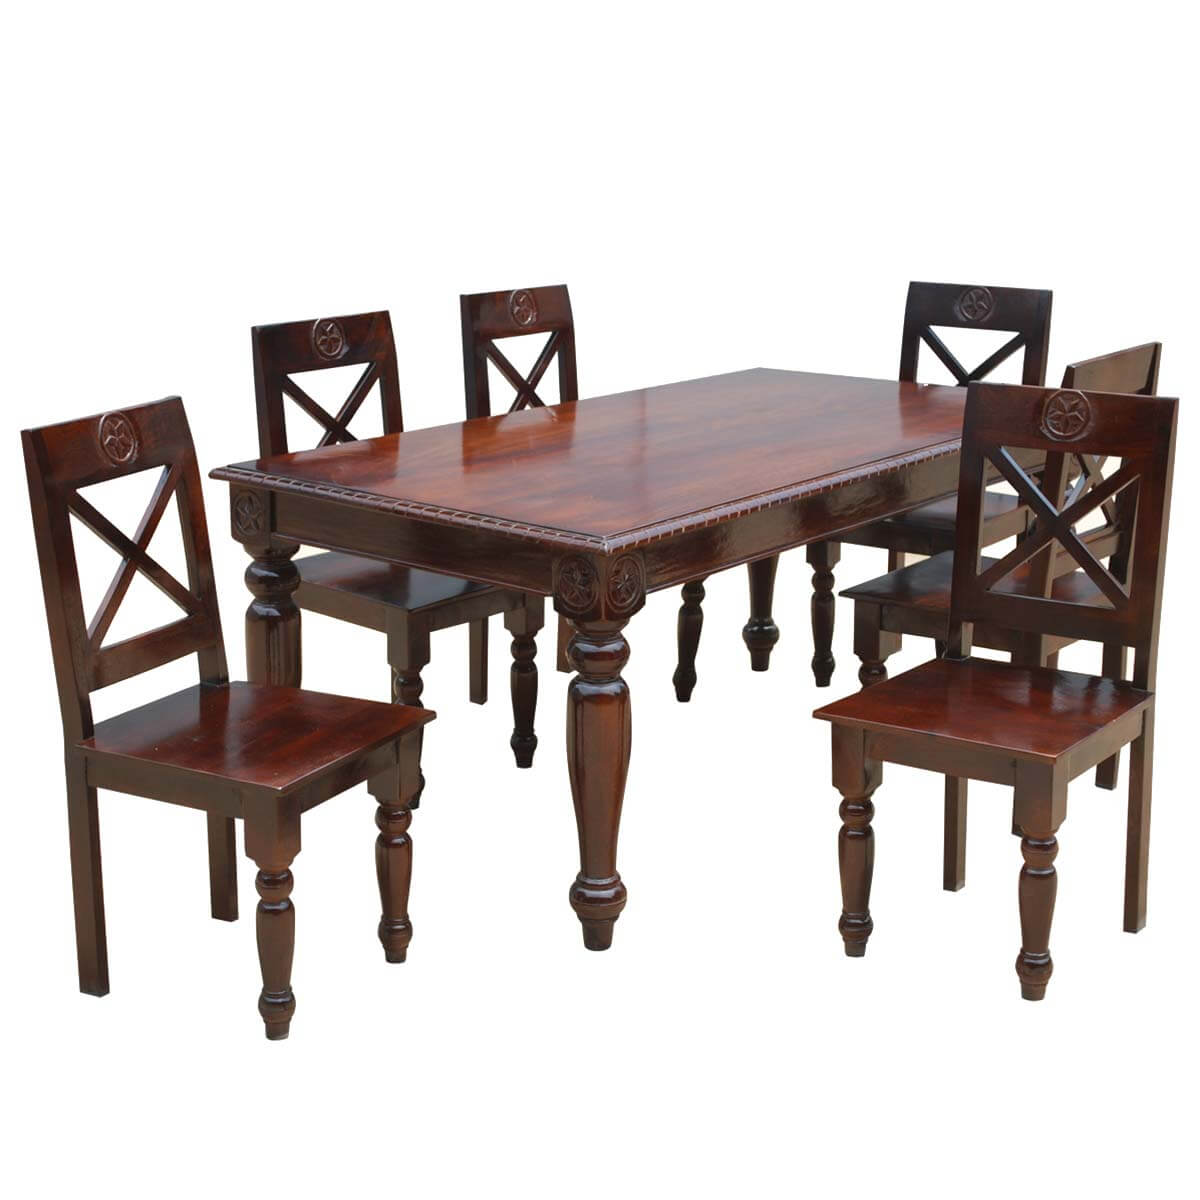 Dining Table With Bench And Chairs Were Comfortable: Texas Rustic Dining Table And Chairs Set